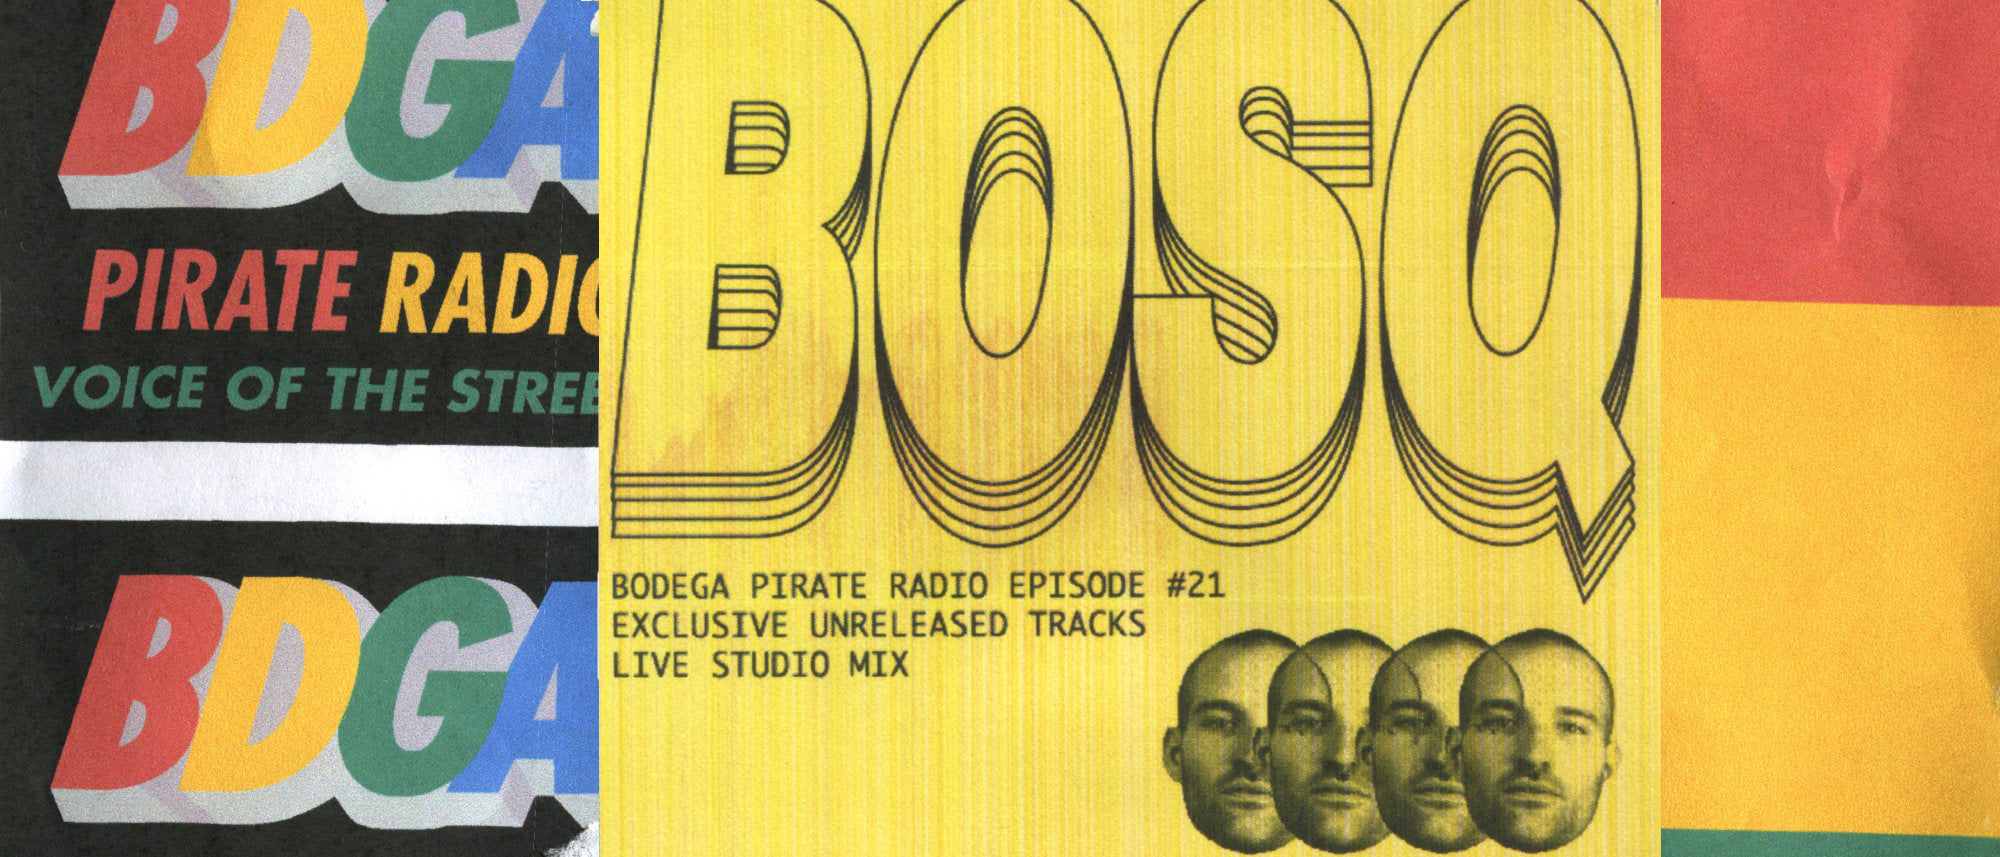 Episode #21: Bosq Live Studio Mix